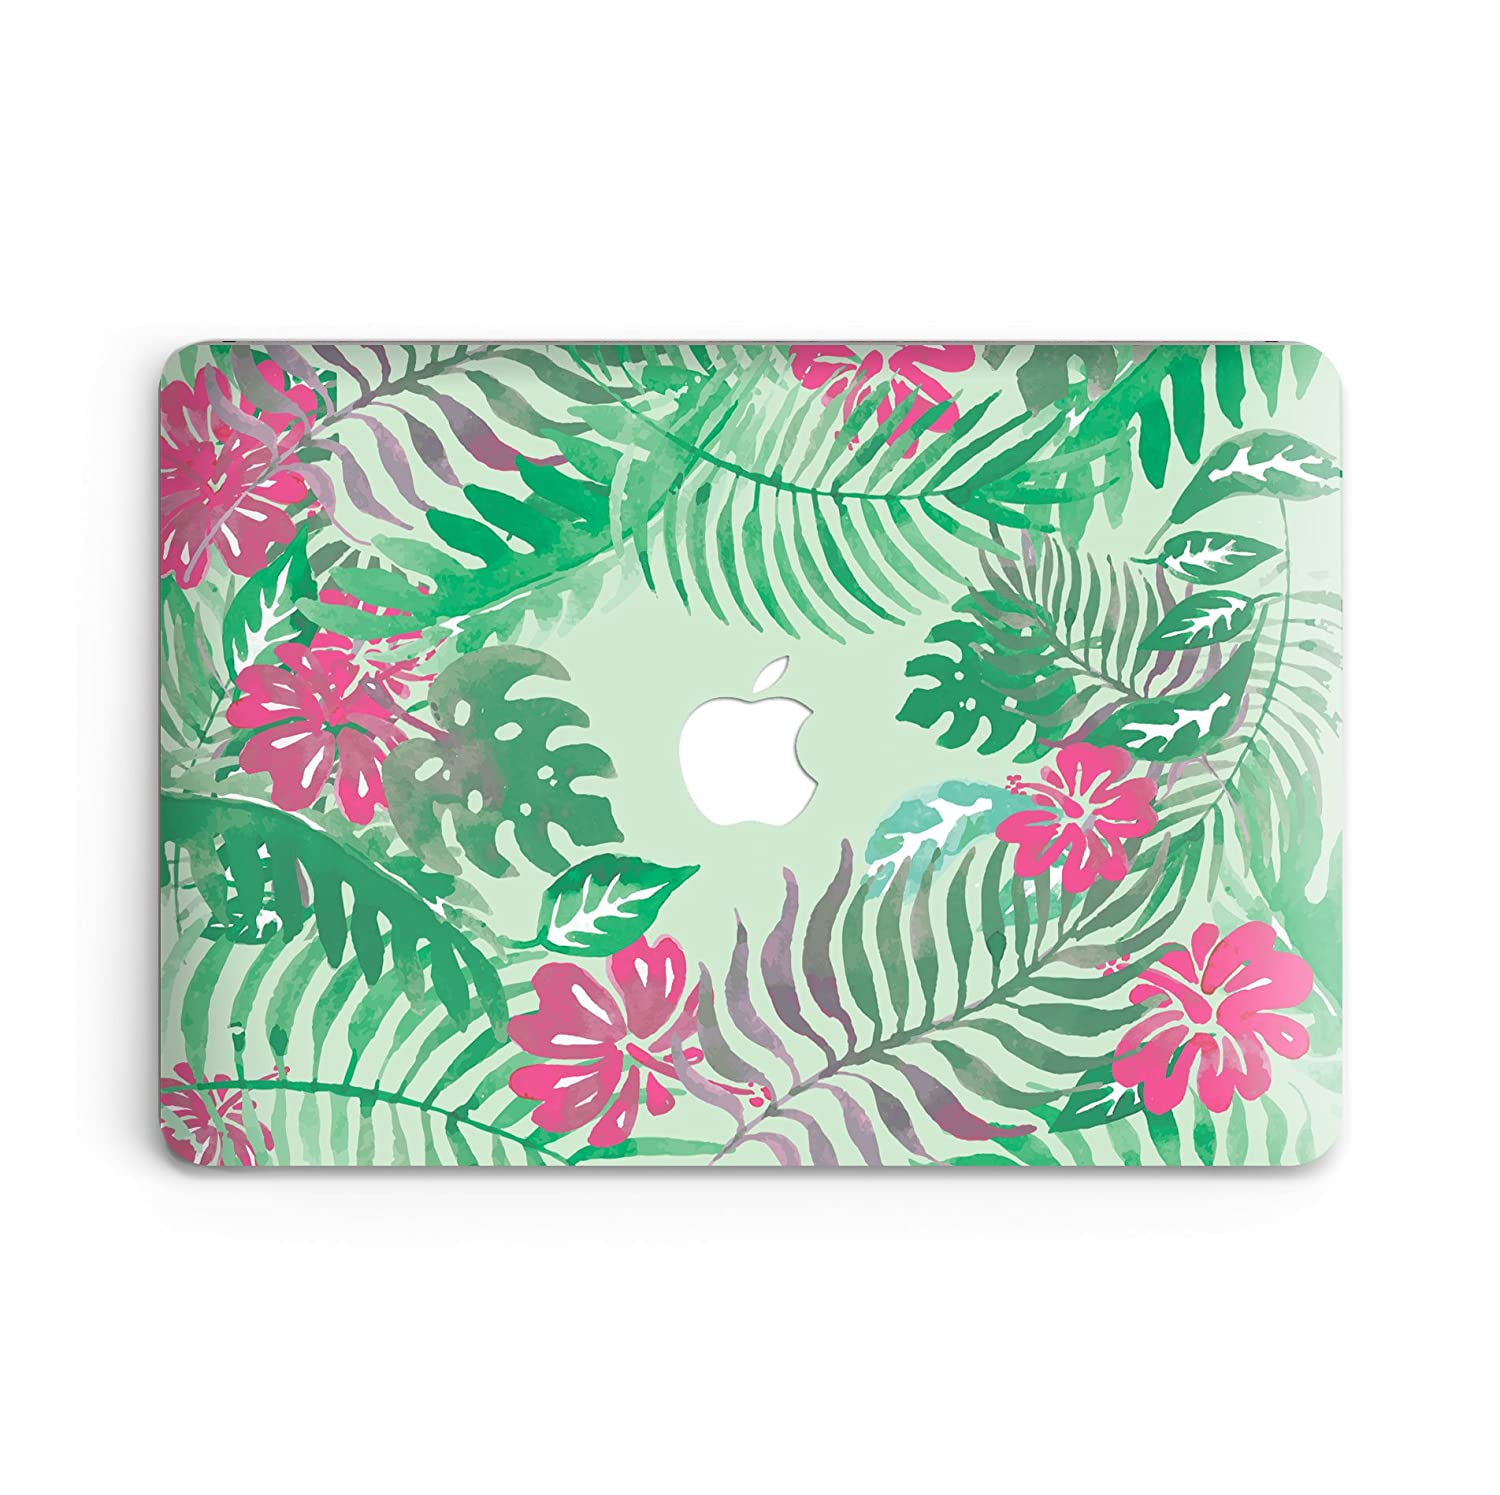 goodmoodcasesプラスチックハードケースカバーfor MacBook Pro Retina 15インチ2013 – 2015 ( a1398 ) without CD ROM ( Not Fit Macbook Pro 15 2016 ) – ピンク&グリーン花柄 B071DZP13C